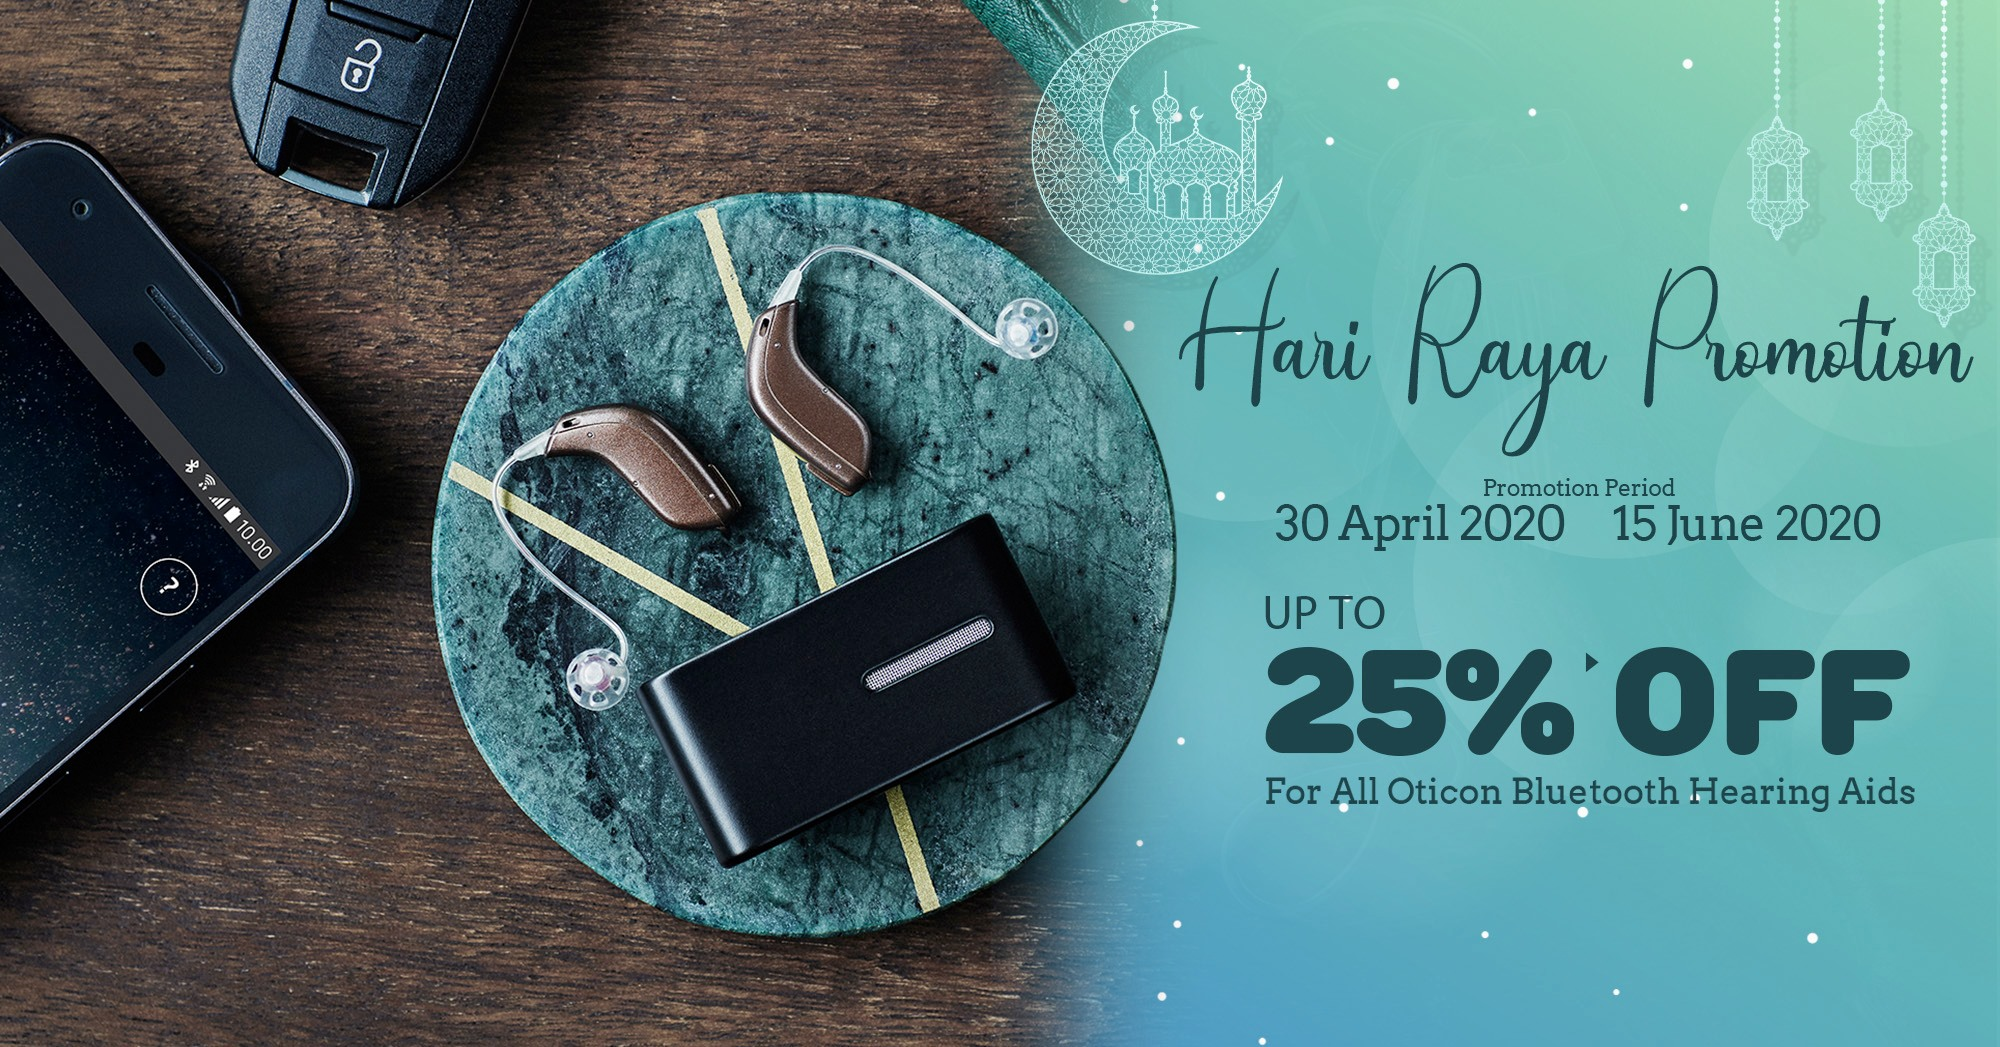 Soundlife The Best Offer For Hearing Aid, Up To 25% Off For All Oticon Bluetooth Hearing Aids 02